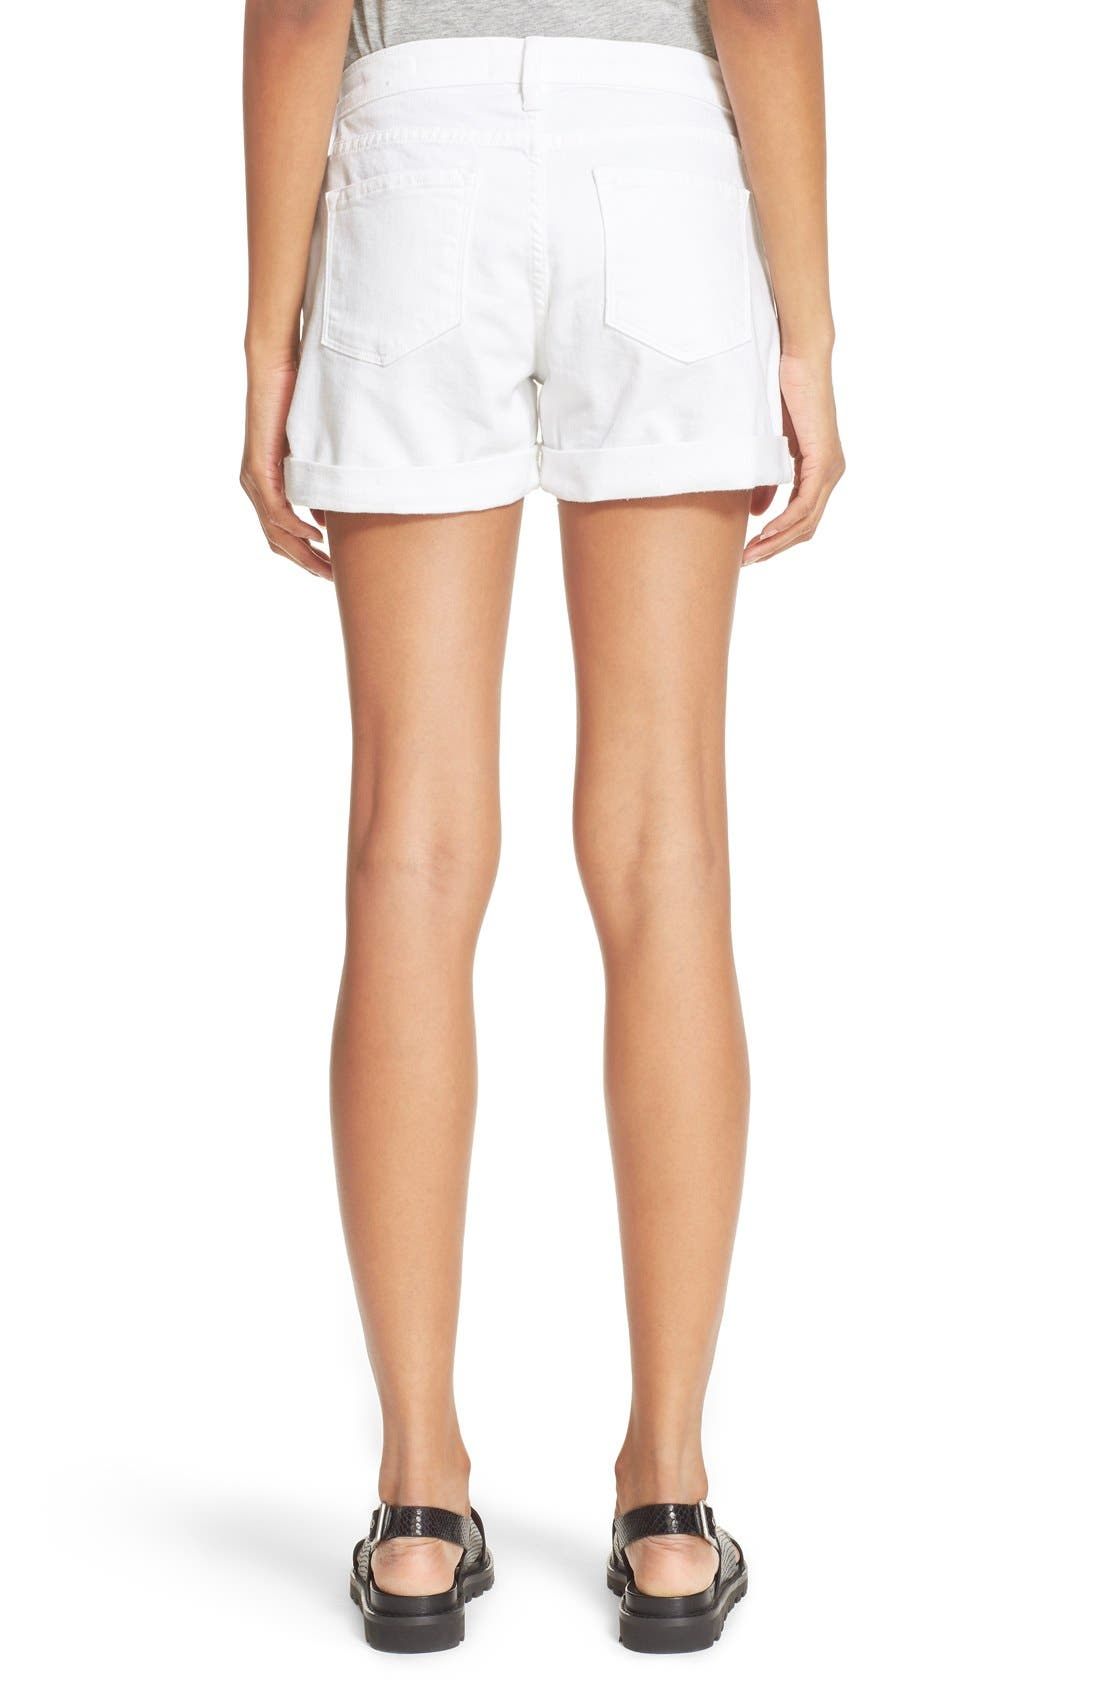 Le Cutoff Cuffed Jean Shorts,                             Alternate thumbnail 10, color,                             120